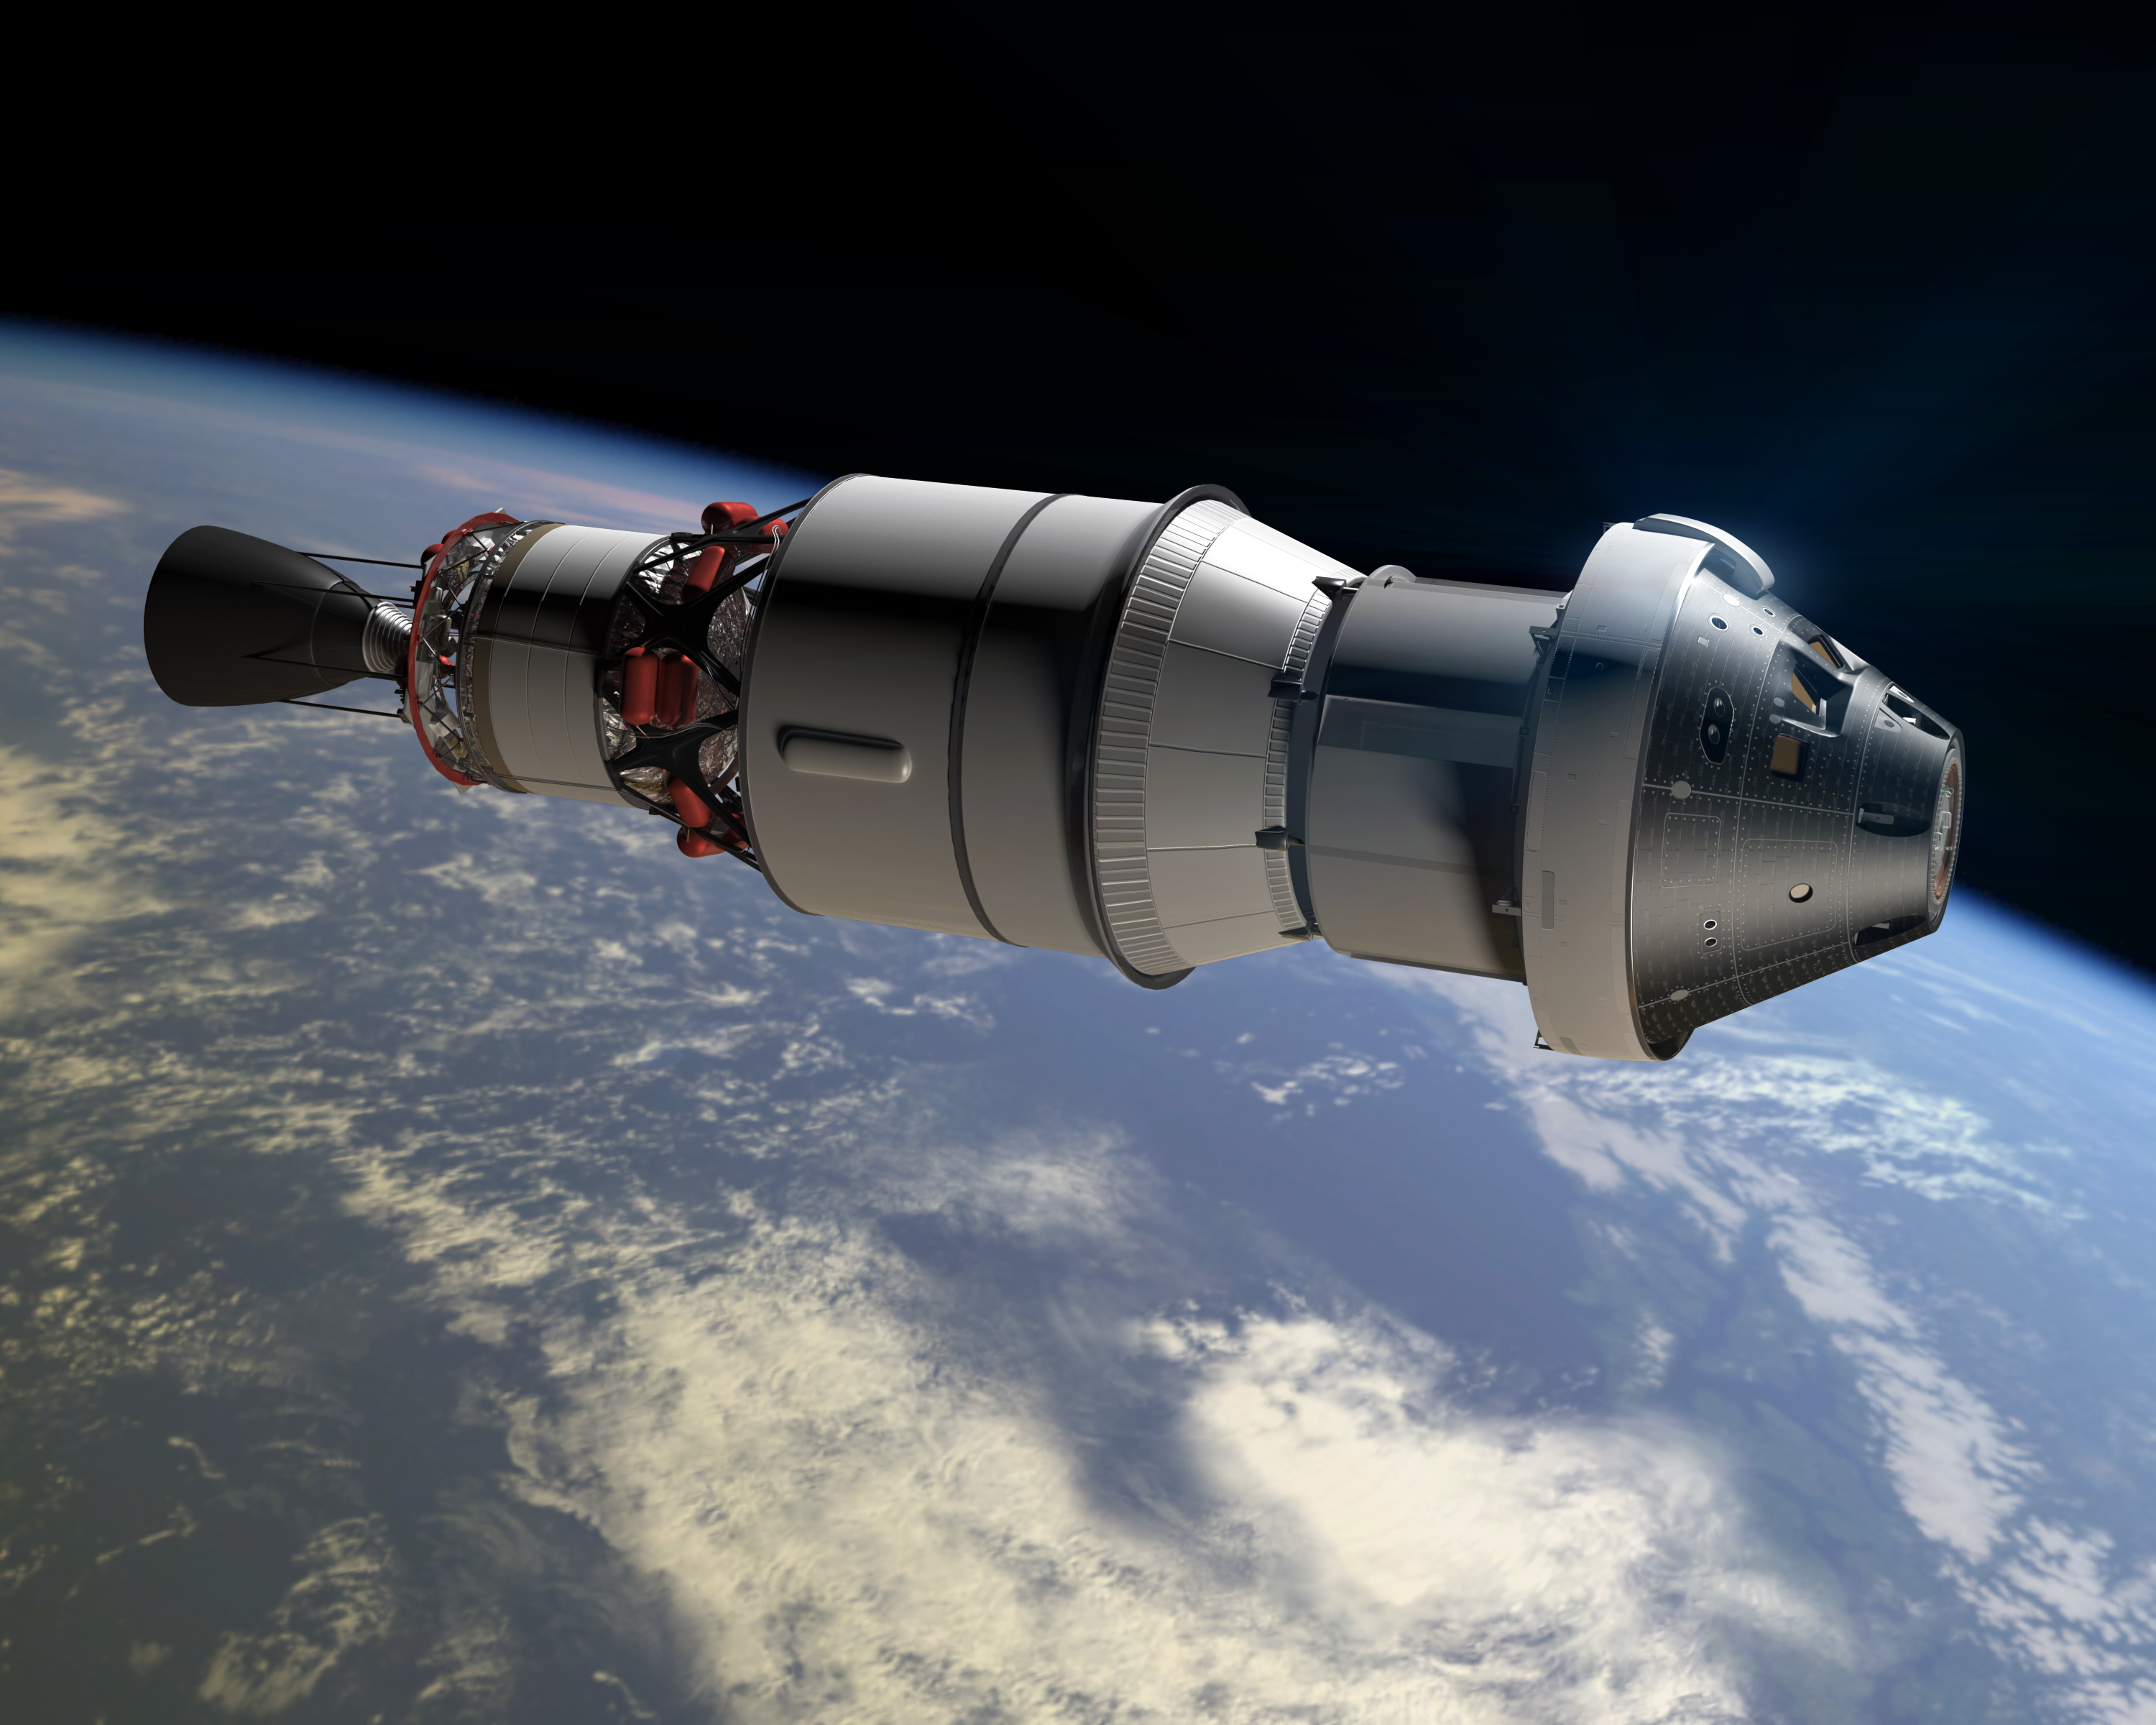 Debut Test Flight Looms for Orion, NASA's Next Manned Spaceship